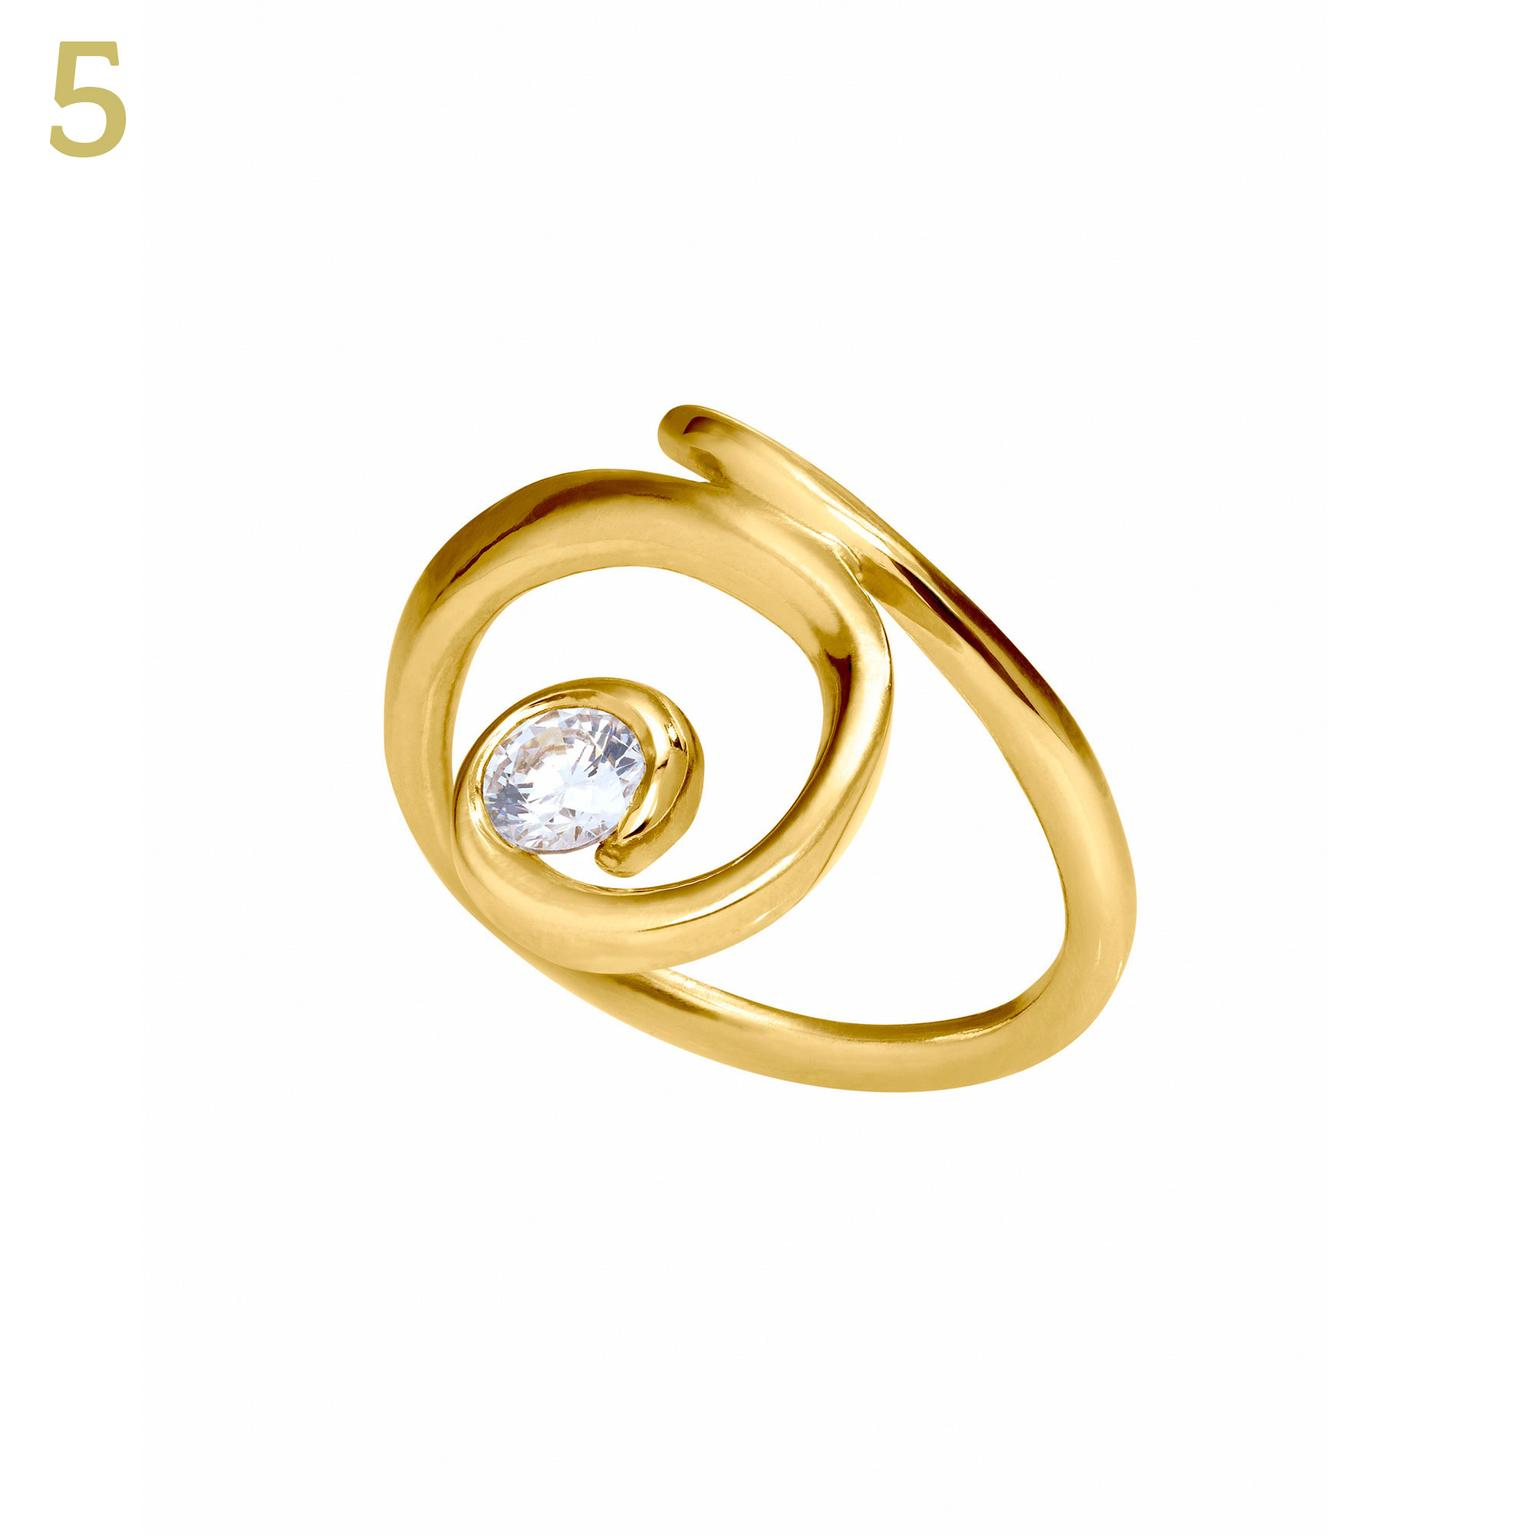 Sarah Jordon for Article Circle Northern Lights Fairtrade gold diamond ring